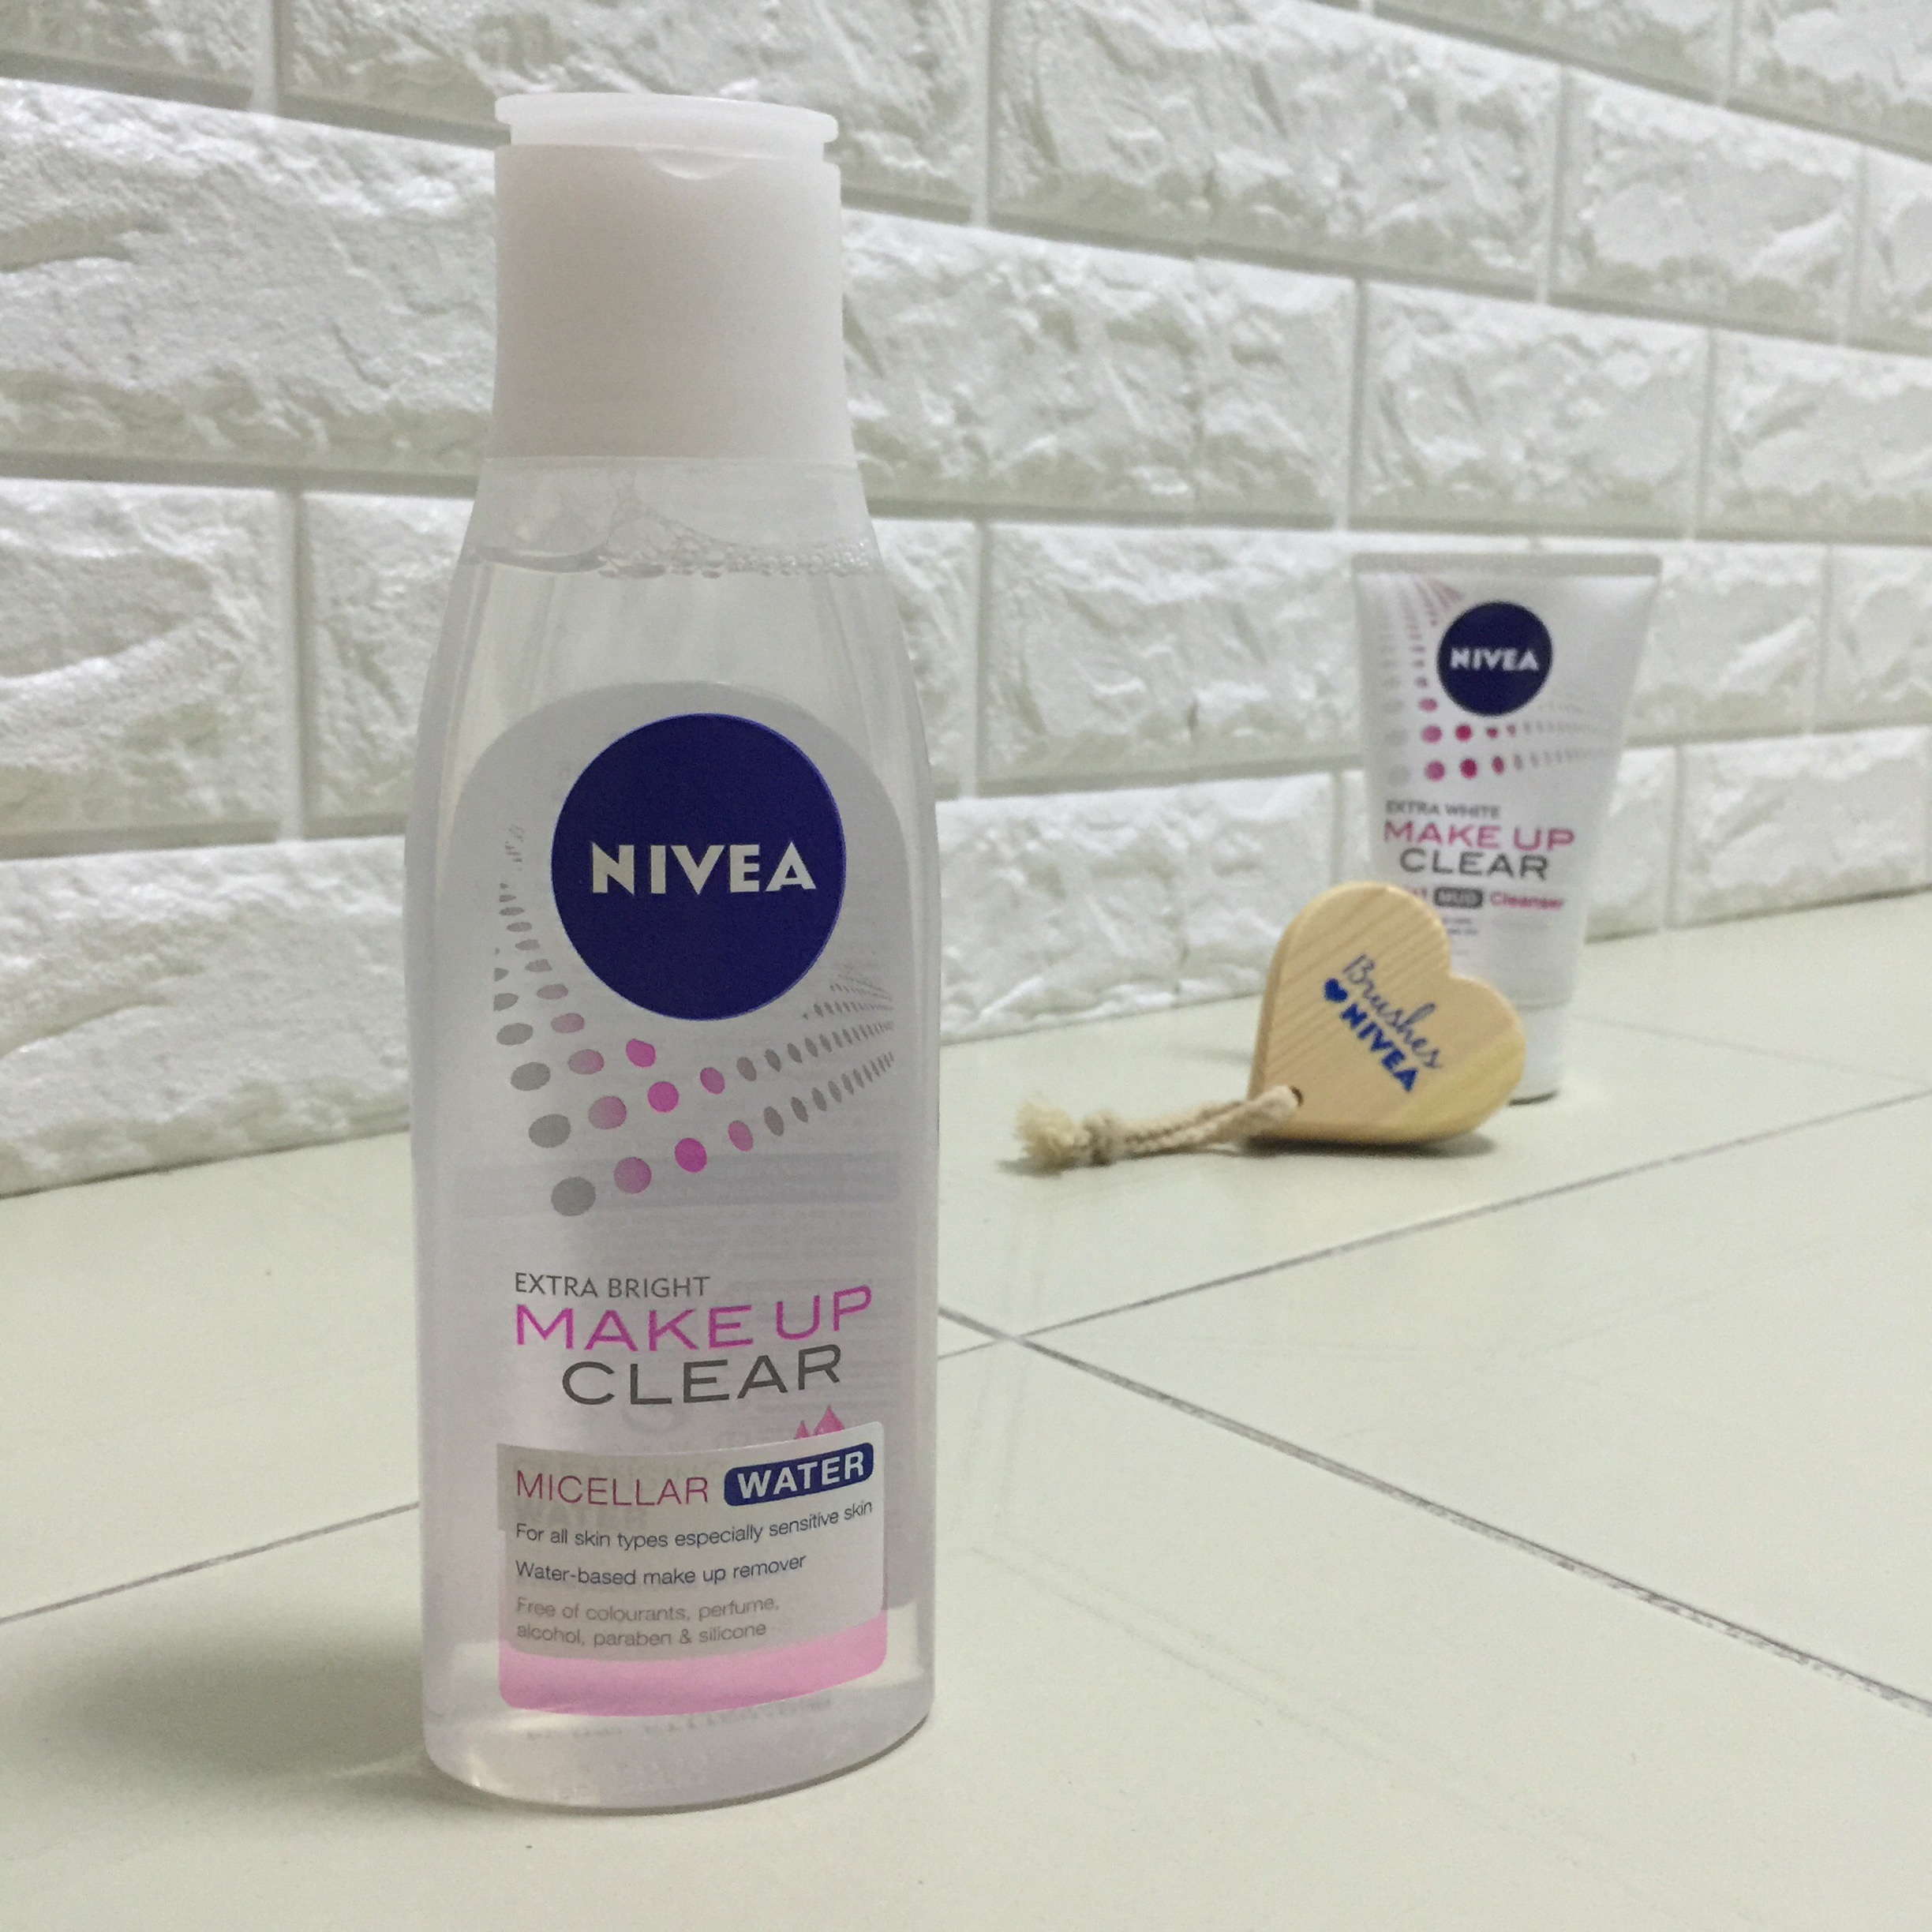 Nivea Extra Bright Make Up Clear Micellar Water Tempted To Love 2 In 1 White Foam 100ml